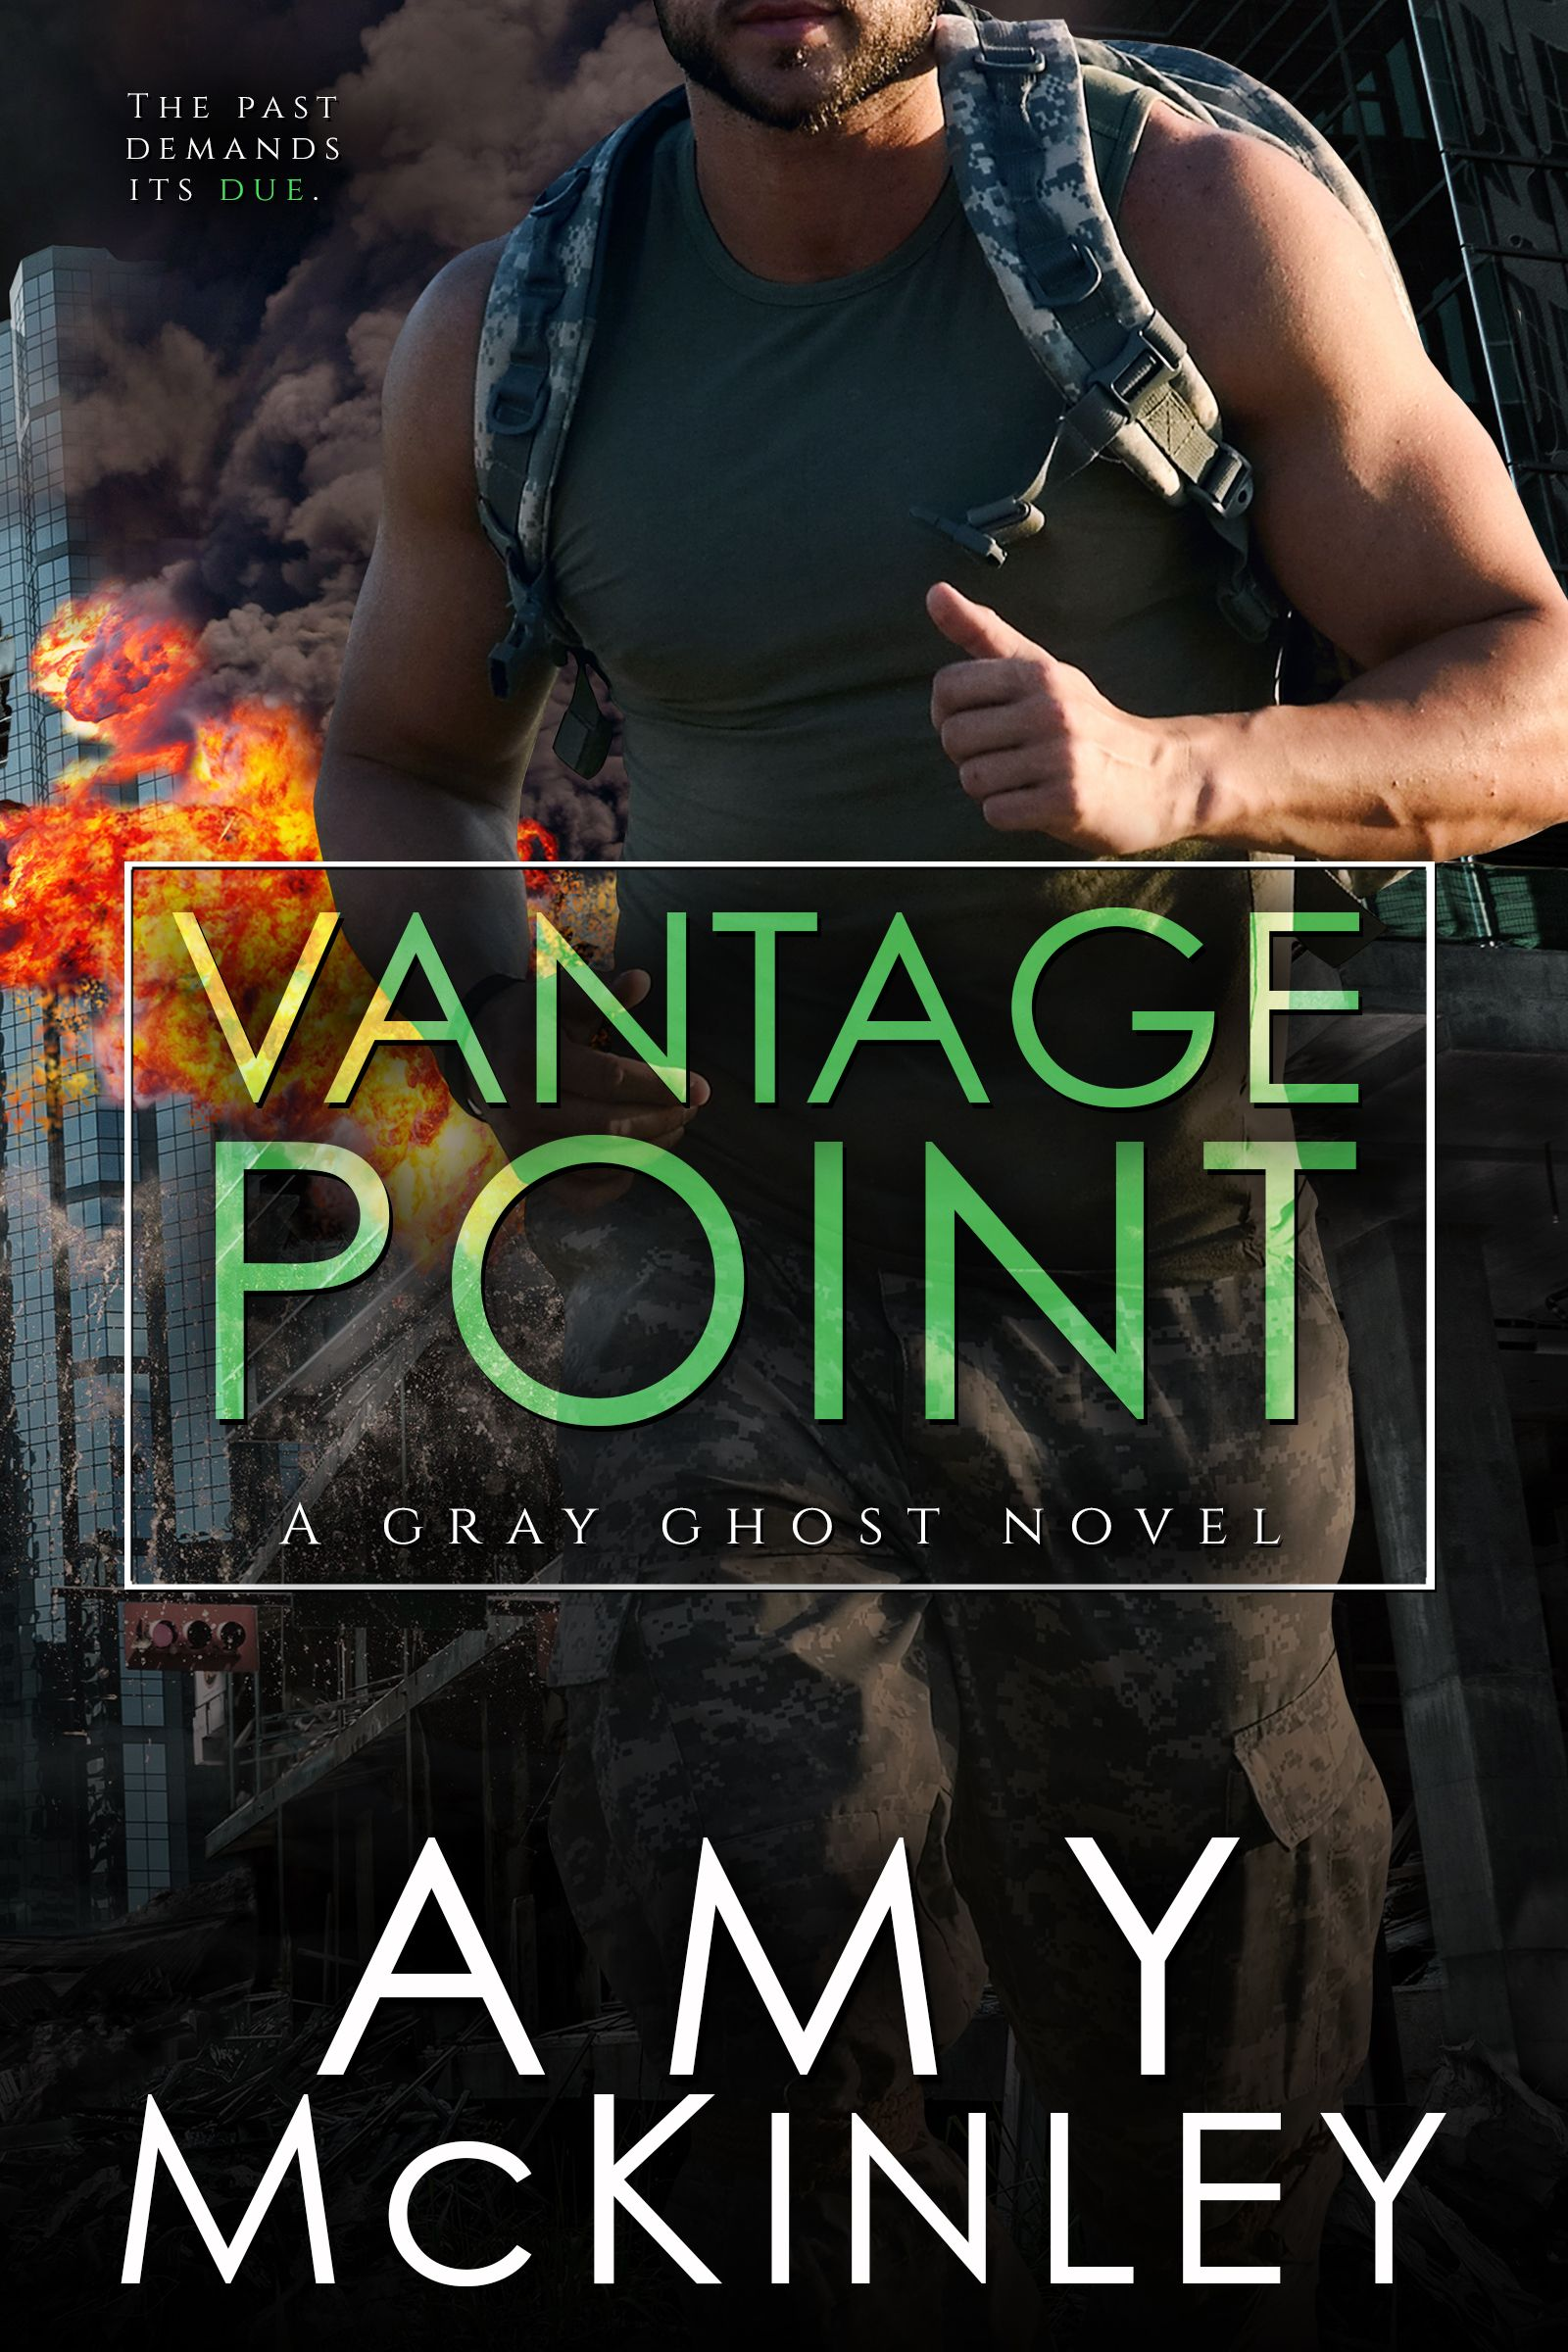 Vantage Point (A Gray Ghost Novel) by AmyMcKinley7 is